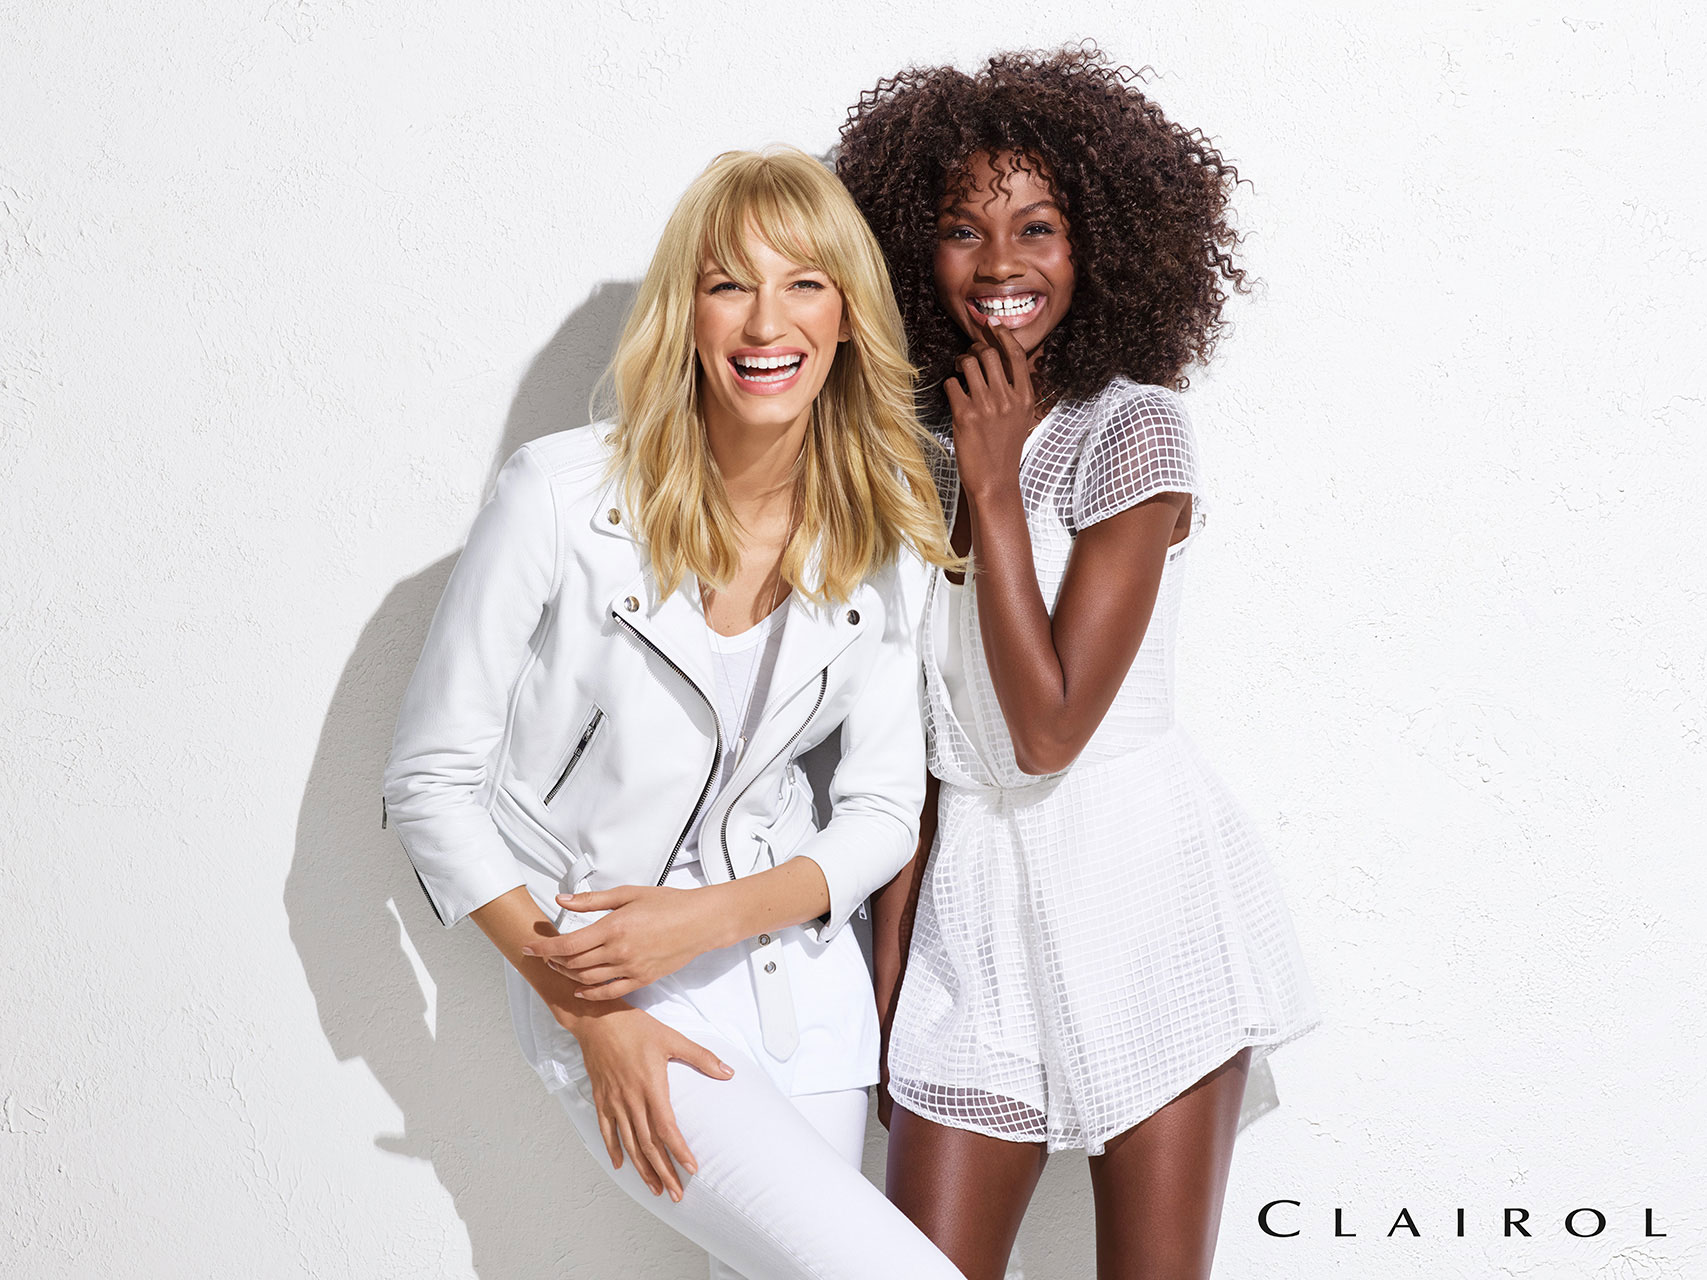 CLAIROL | GREY | CHRIS CRAYMER